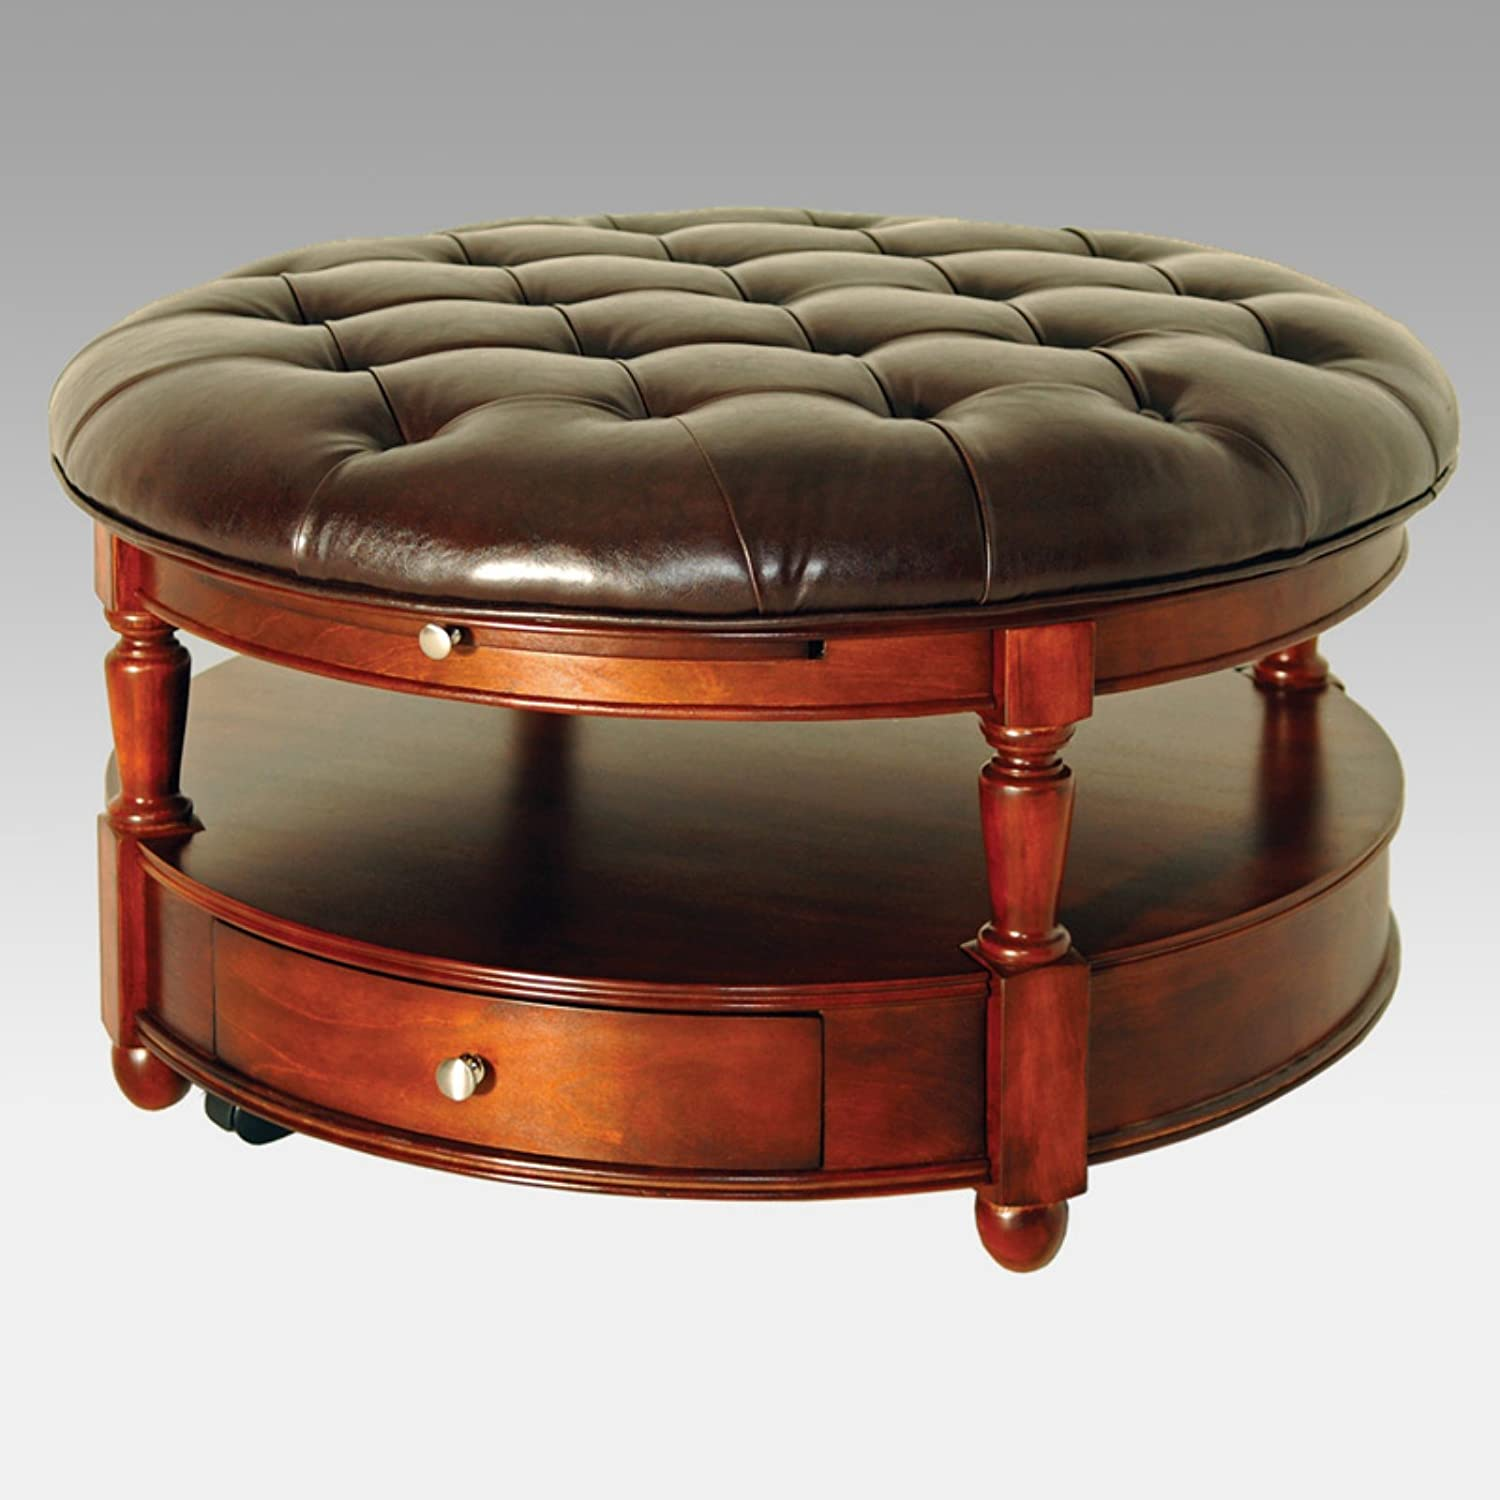 Large round tufted leather ottomans with storage olivia 39 s place Large ottoman coffee table